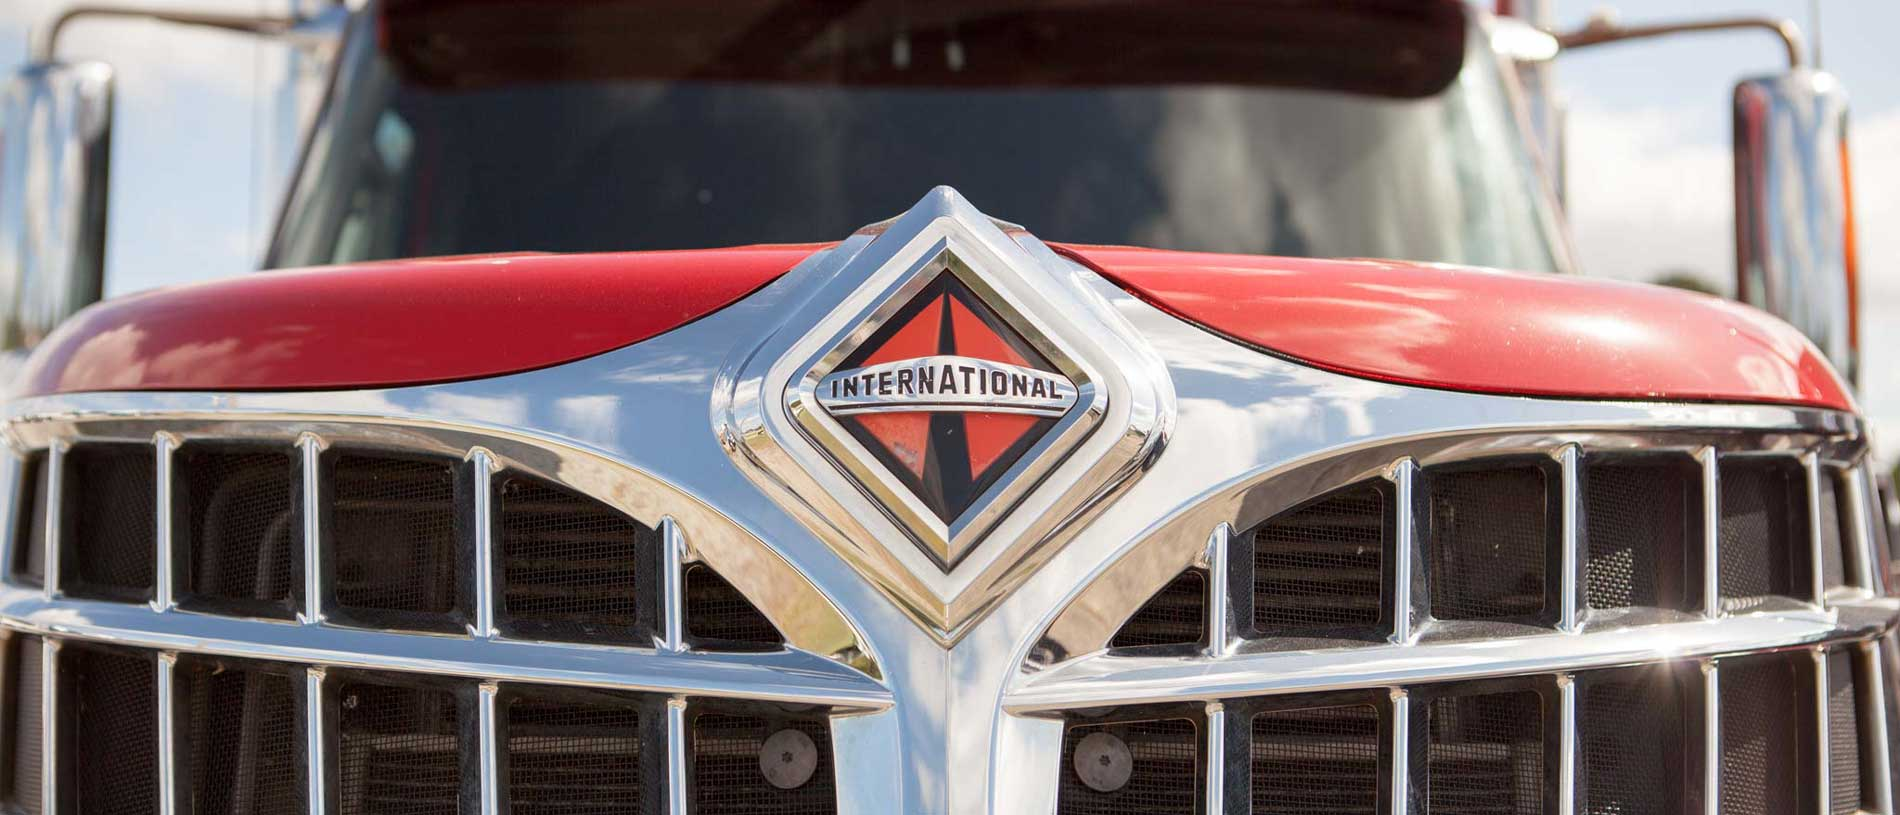 International Truck Grill & Logo